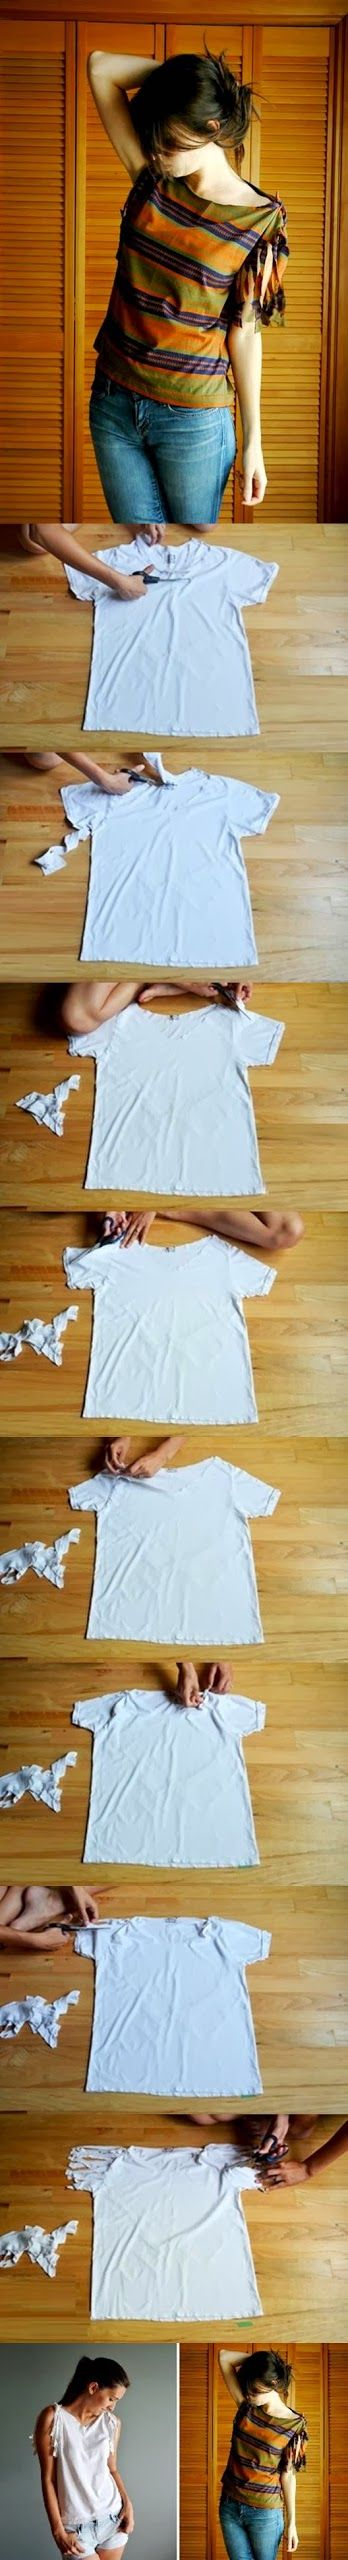 DIY : No-Sew Refashion a Basic Tee